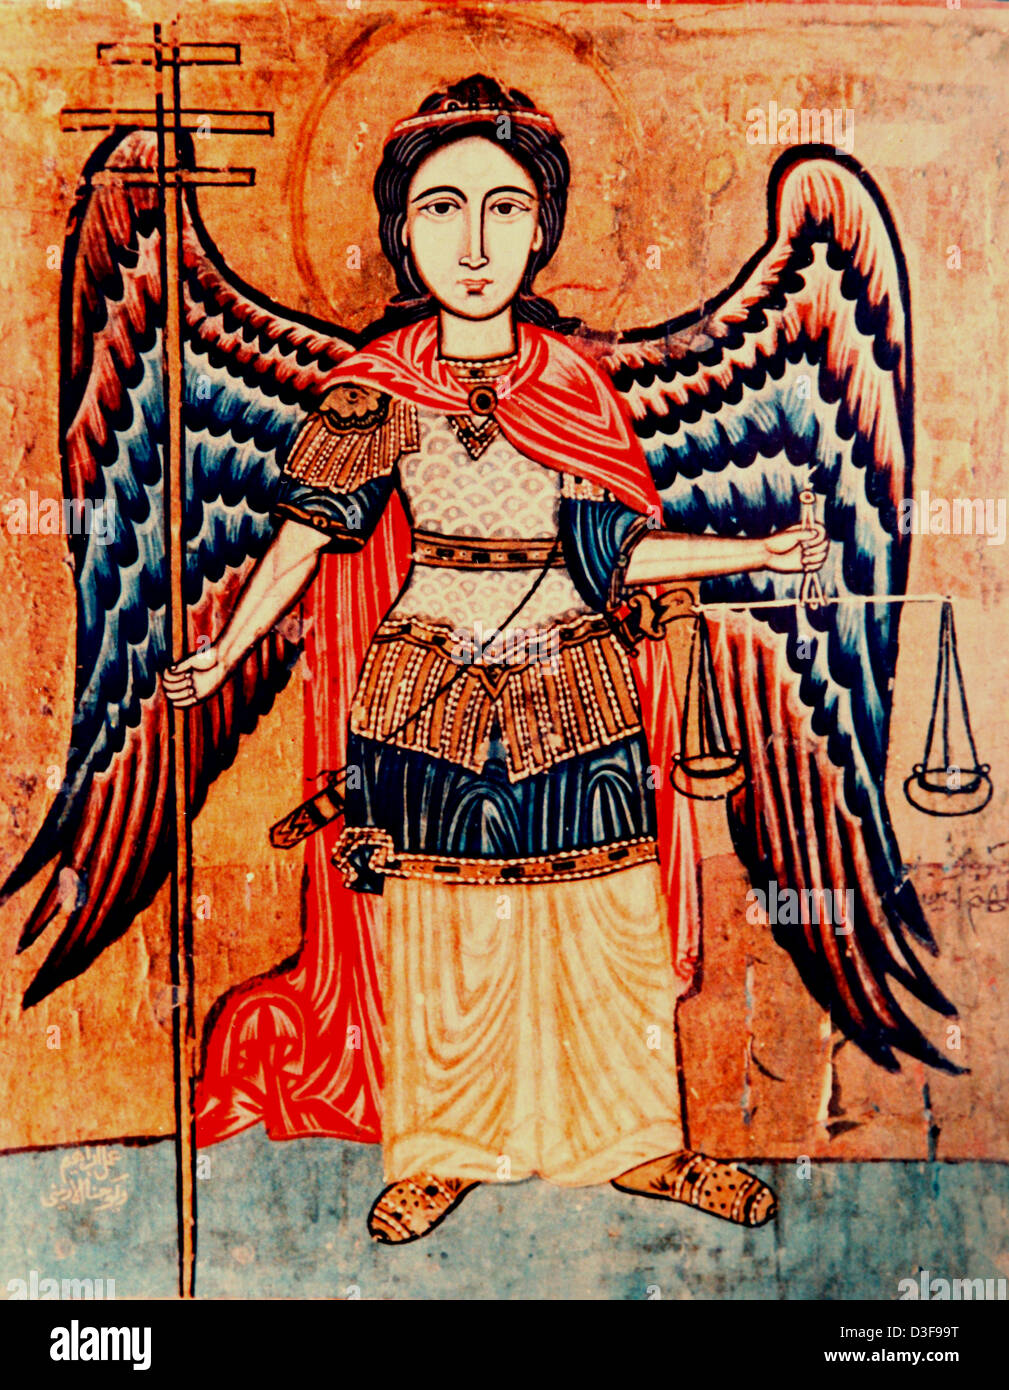 Artwork depicting the Archangel Michael holding the scales of justice - Stock Image